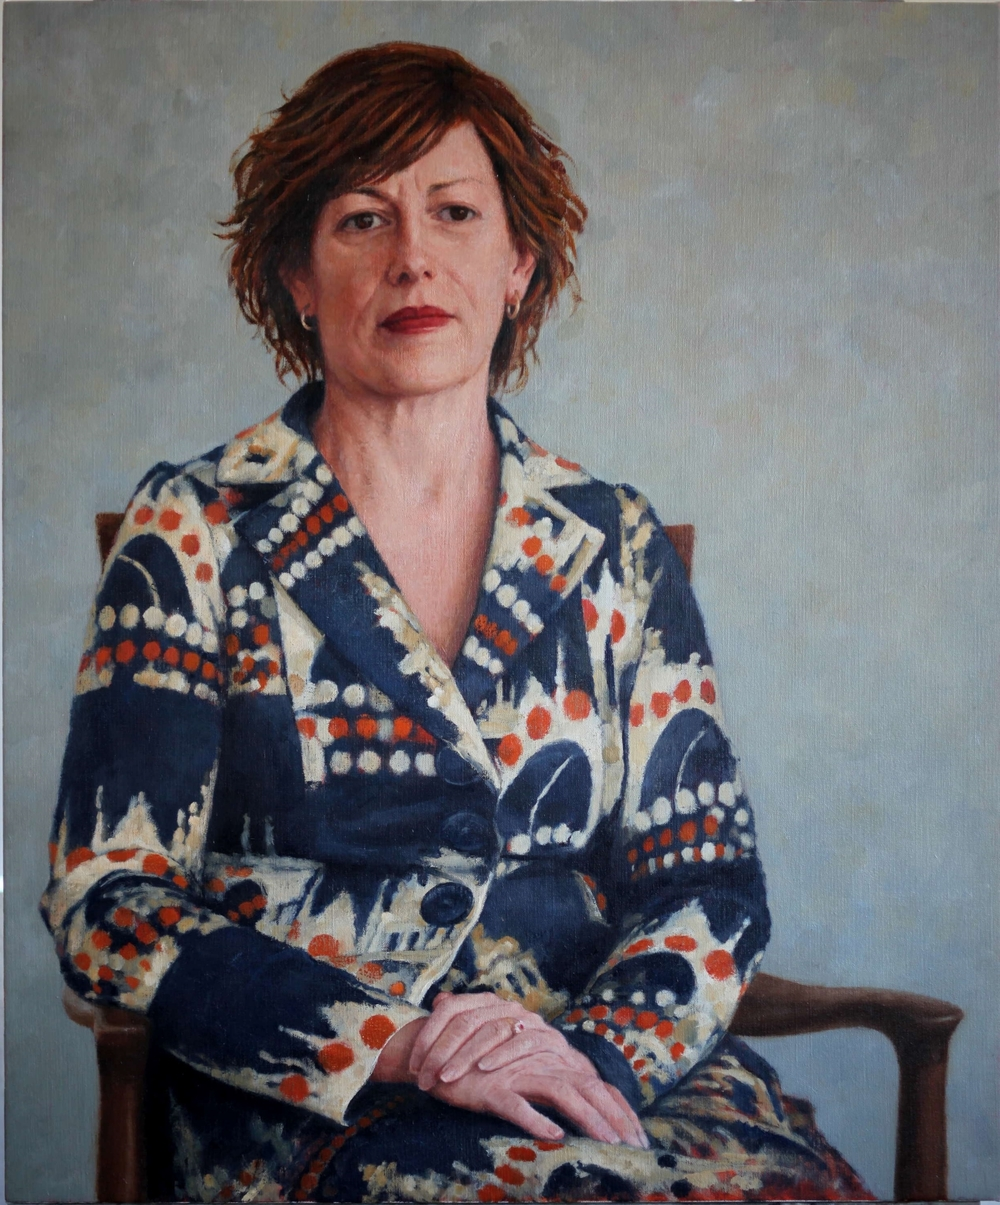 Anna Burke MP, Former Speaker of the Australian House of Representatives, 2015, 1000mm x 1200mm, Oil on linen.